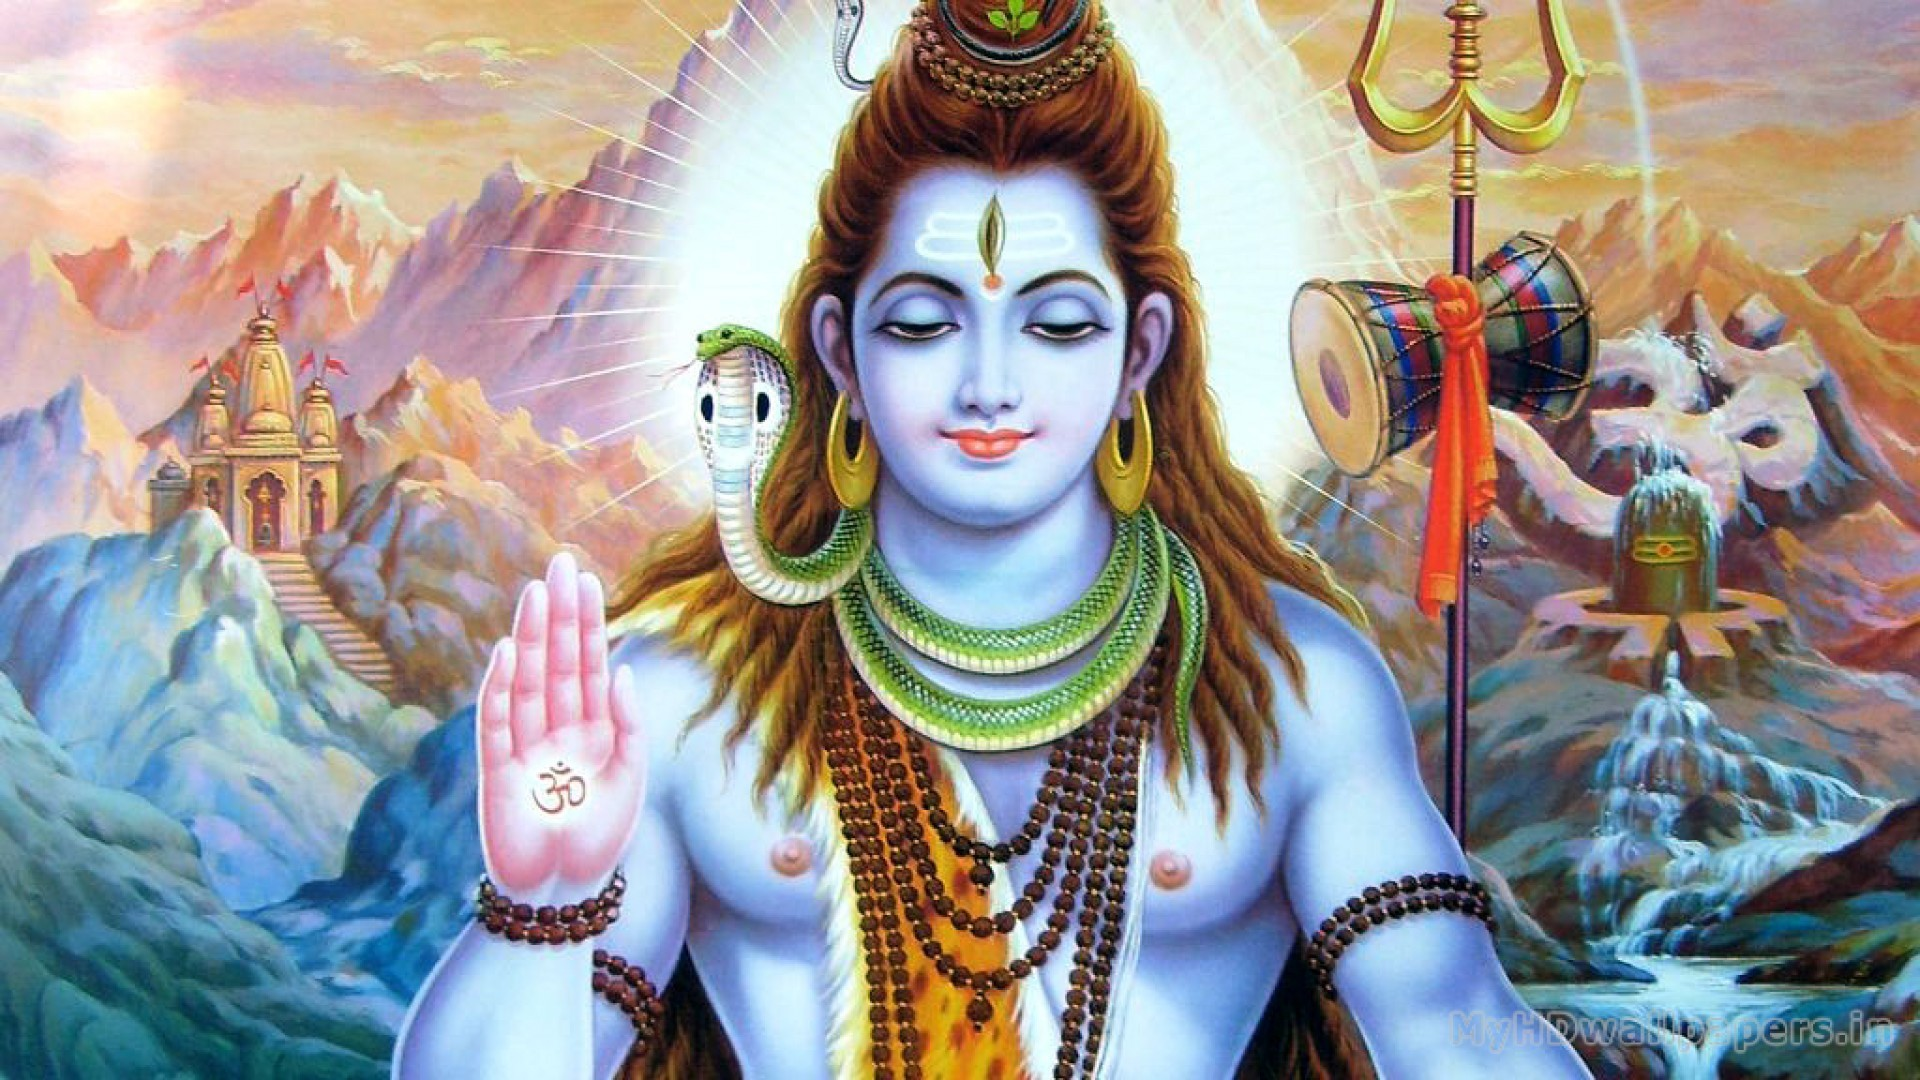 Shiva Wallpaper Hindu Wallpaper Lord Shiva Ji Wallpapers: HD Hindu God Desktop Wallpaper (44+ Images